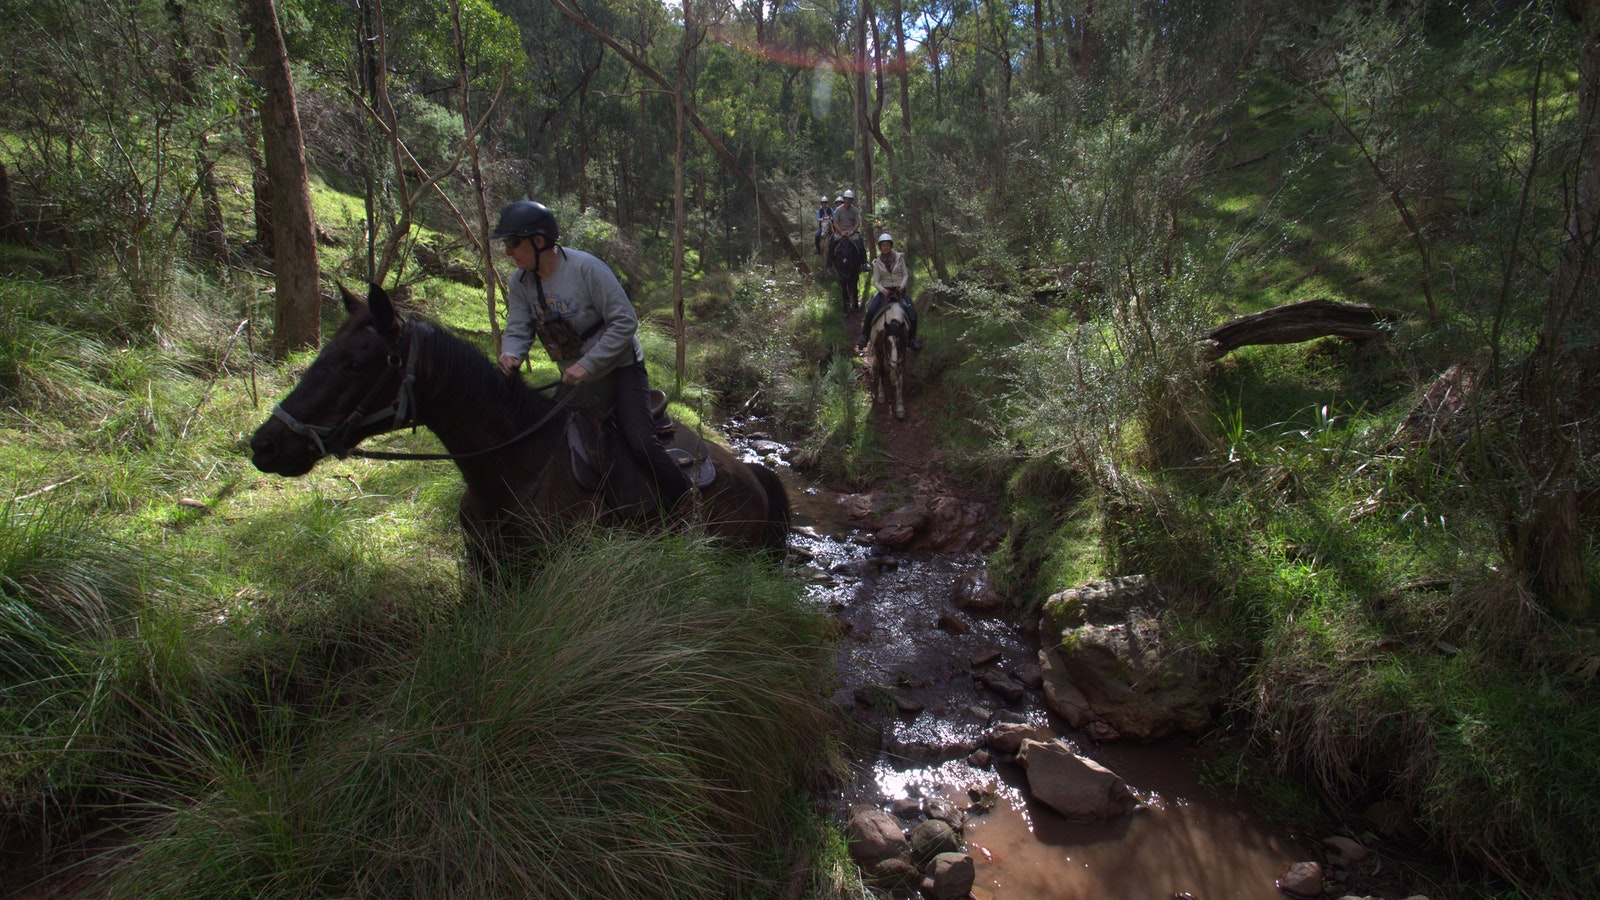 Crossing a creek on the overnight horse ride